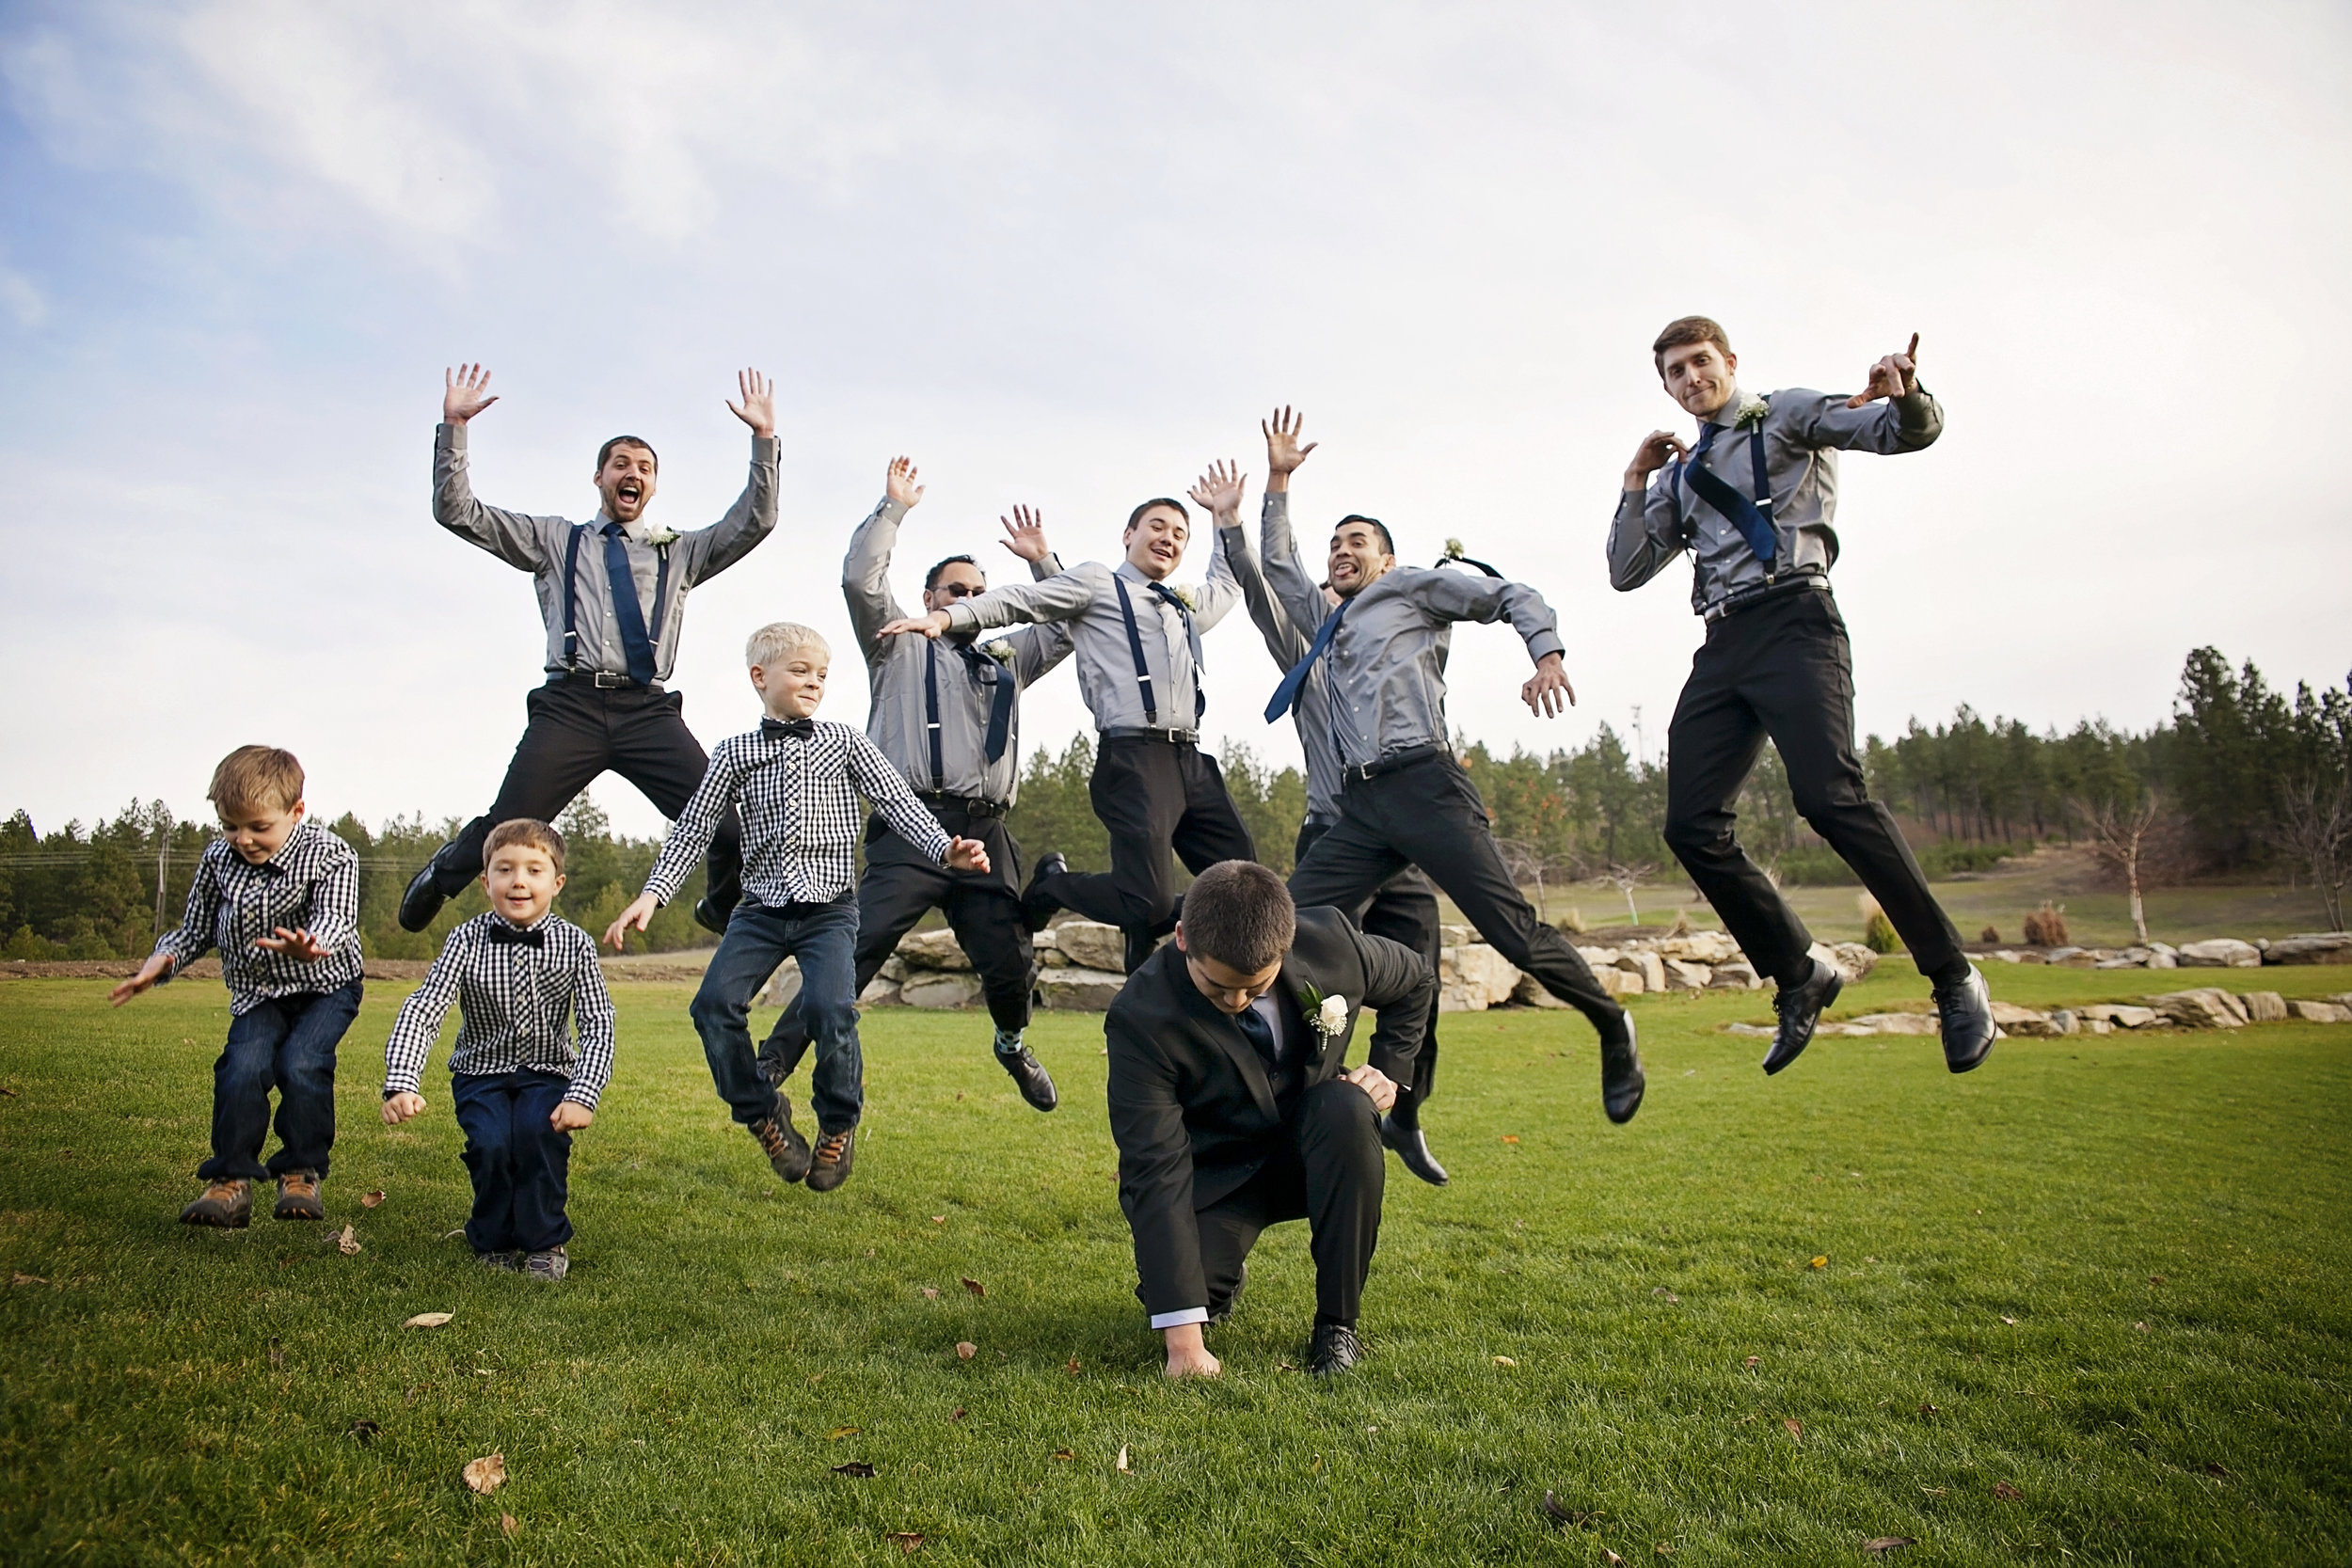 Wedding at Beacon Hill events with groomsmen jumping in the air by local Spokane wedding photographer Nate Robinson Photography